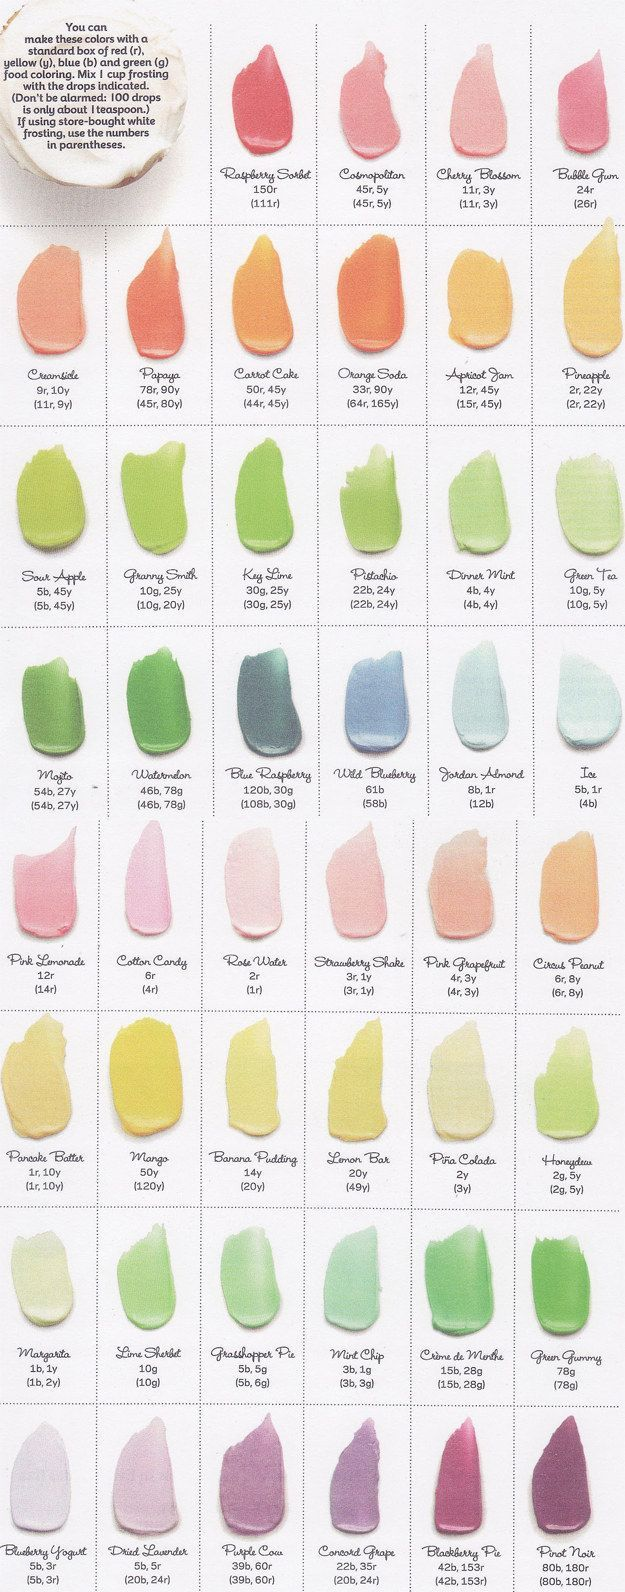 Follow this chart to make literally any color of frosting. From the geniuses at The Food Network Magazine. www.foodnetwork.c...